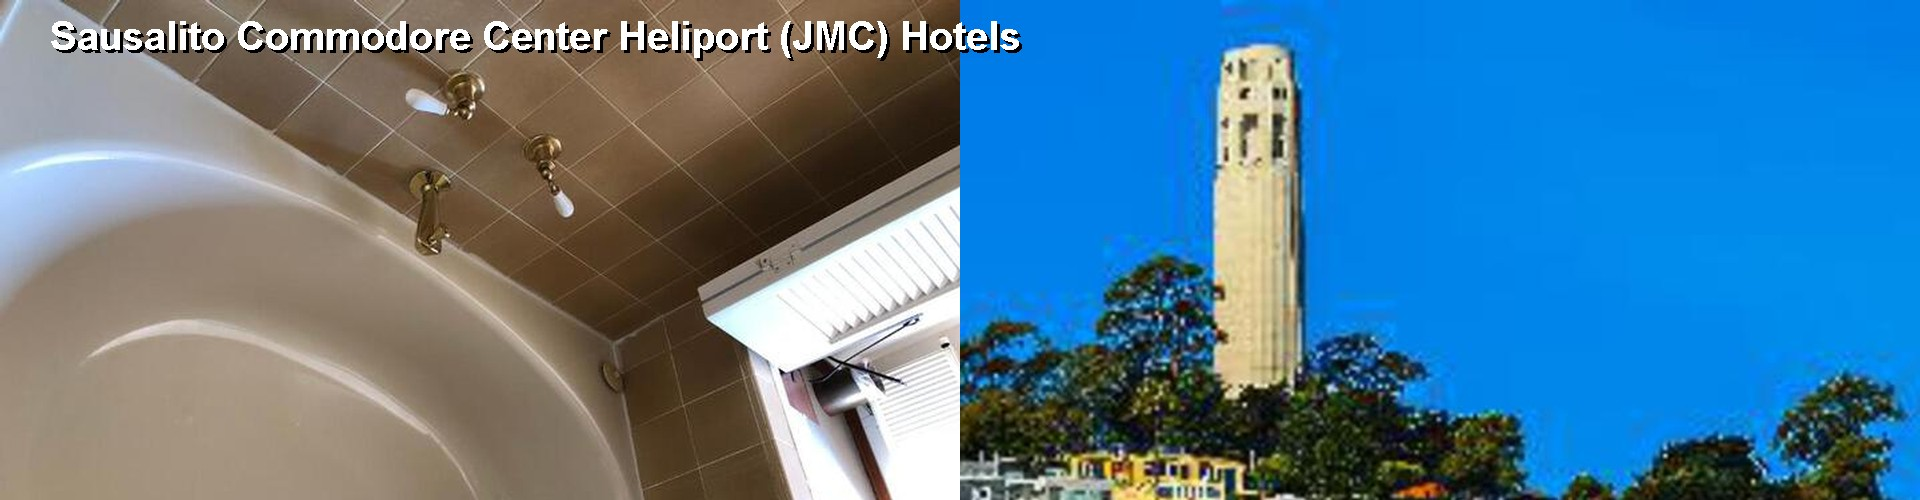 5 Best Hotels near Sausalito Commodore Center Heliport (JMC)